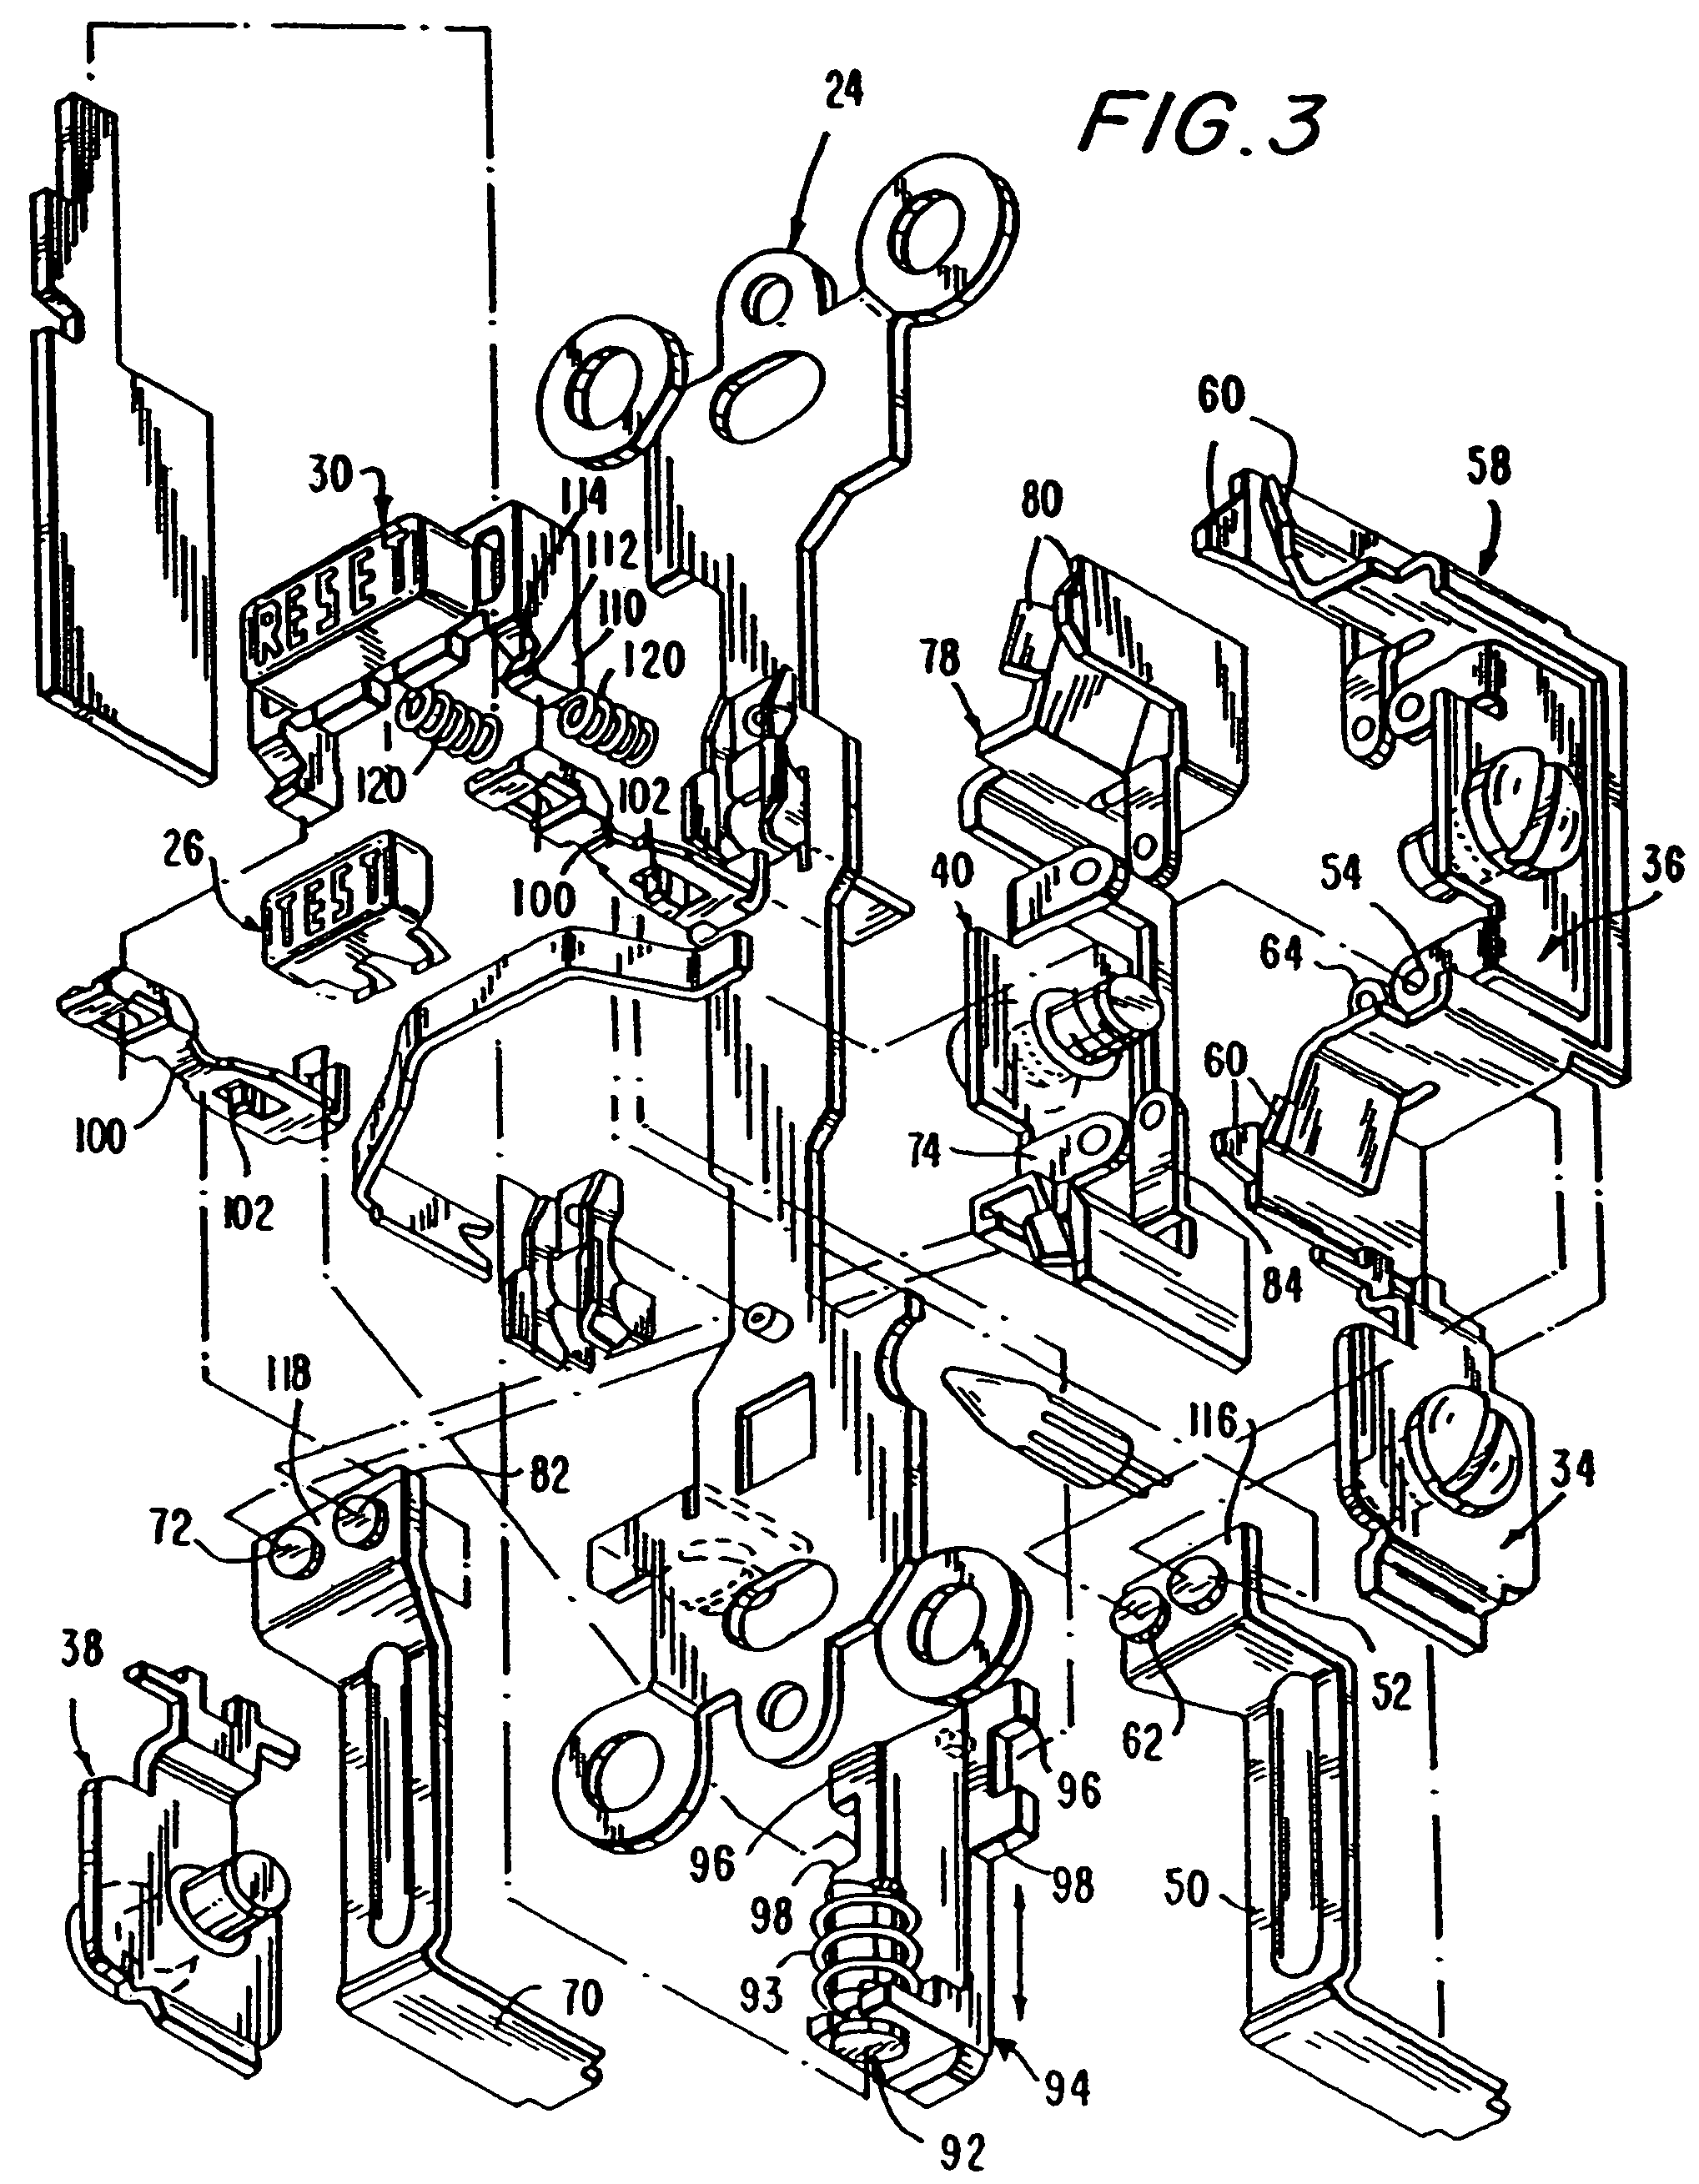 patent us7944331 circuit interrupting device with reverse wiring GFCI Circuit Tester Distributors patent drawing